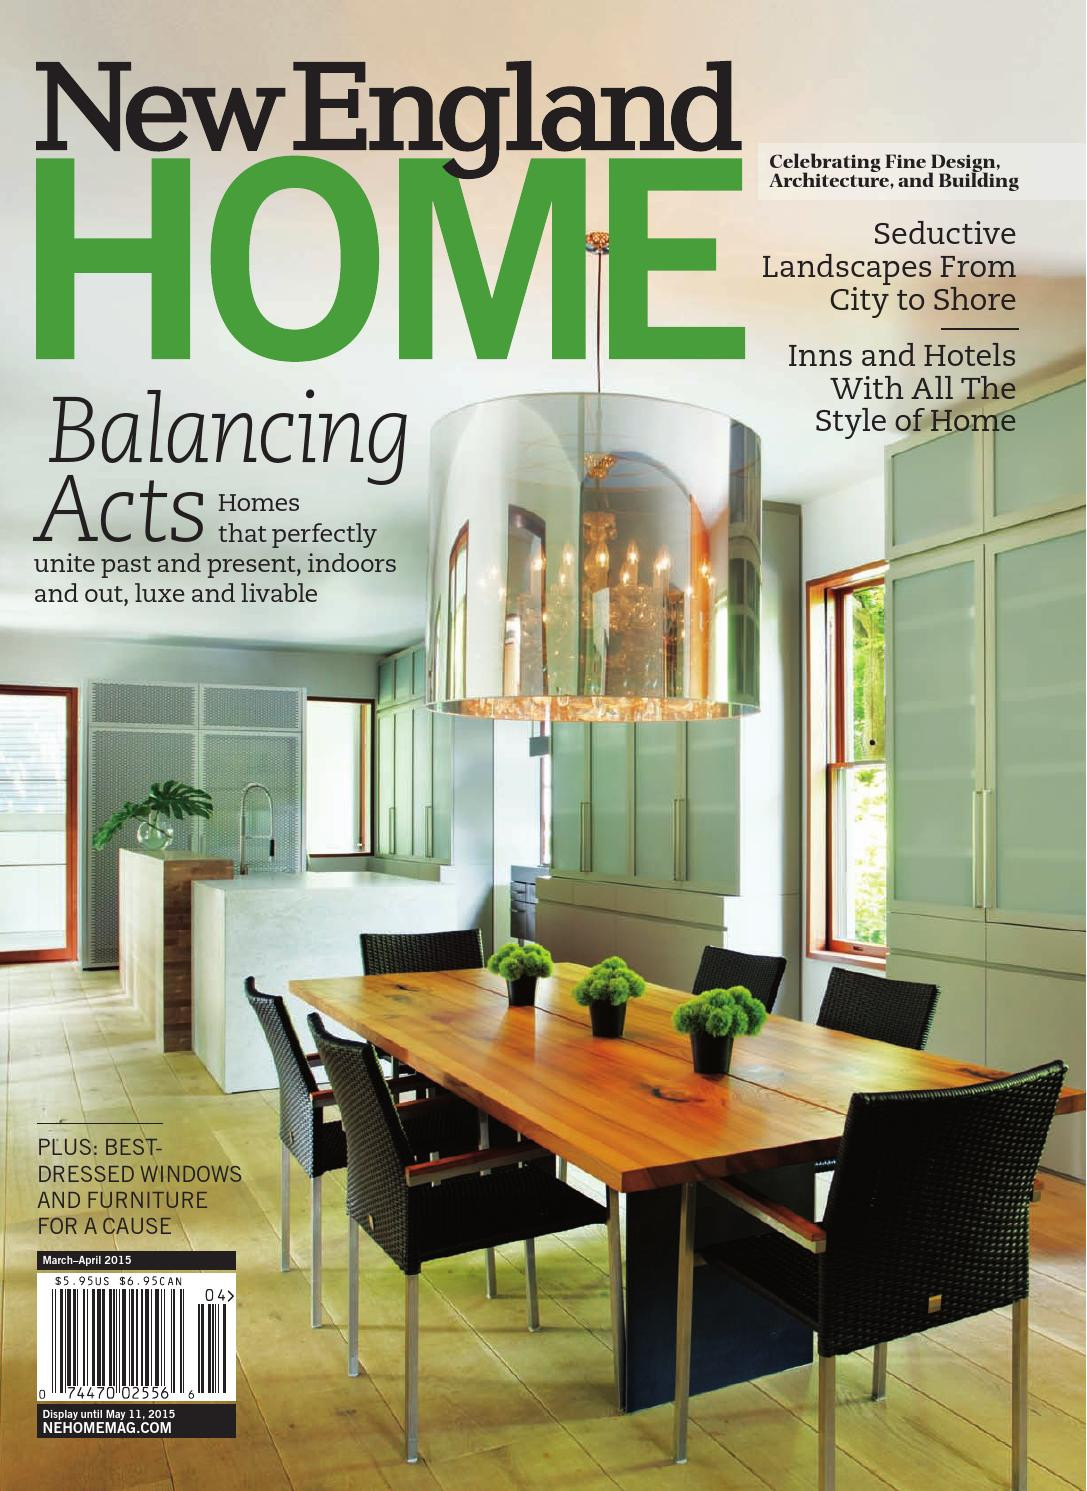 best humidity level for hardwood floors in winter of new england home march april 2015 by new england home magazine llc with regard to new england home march april 2015 by new england home magazine llc issuu